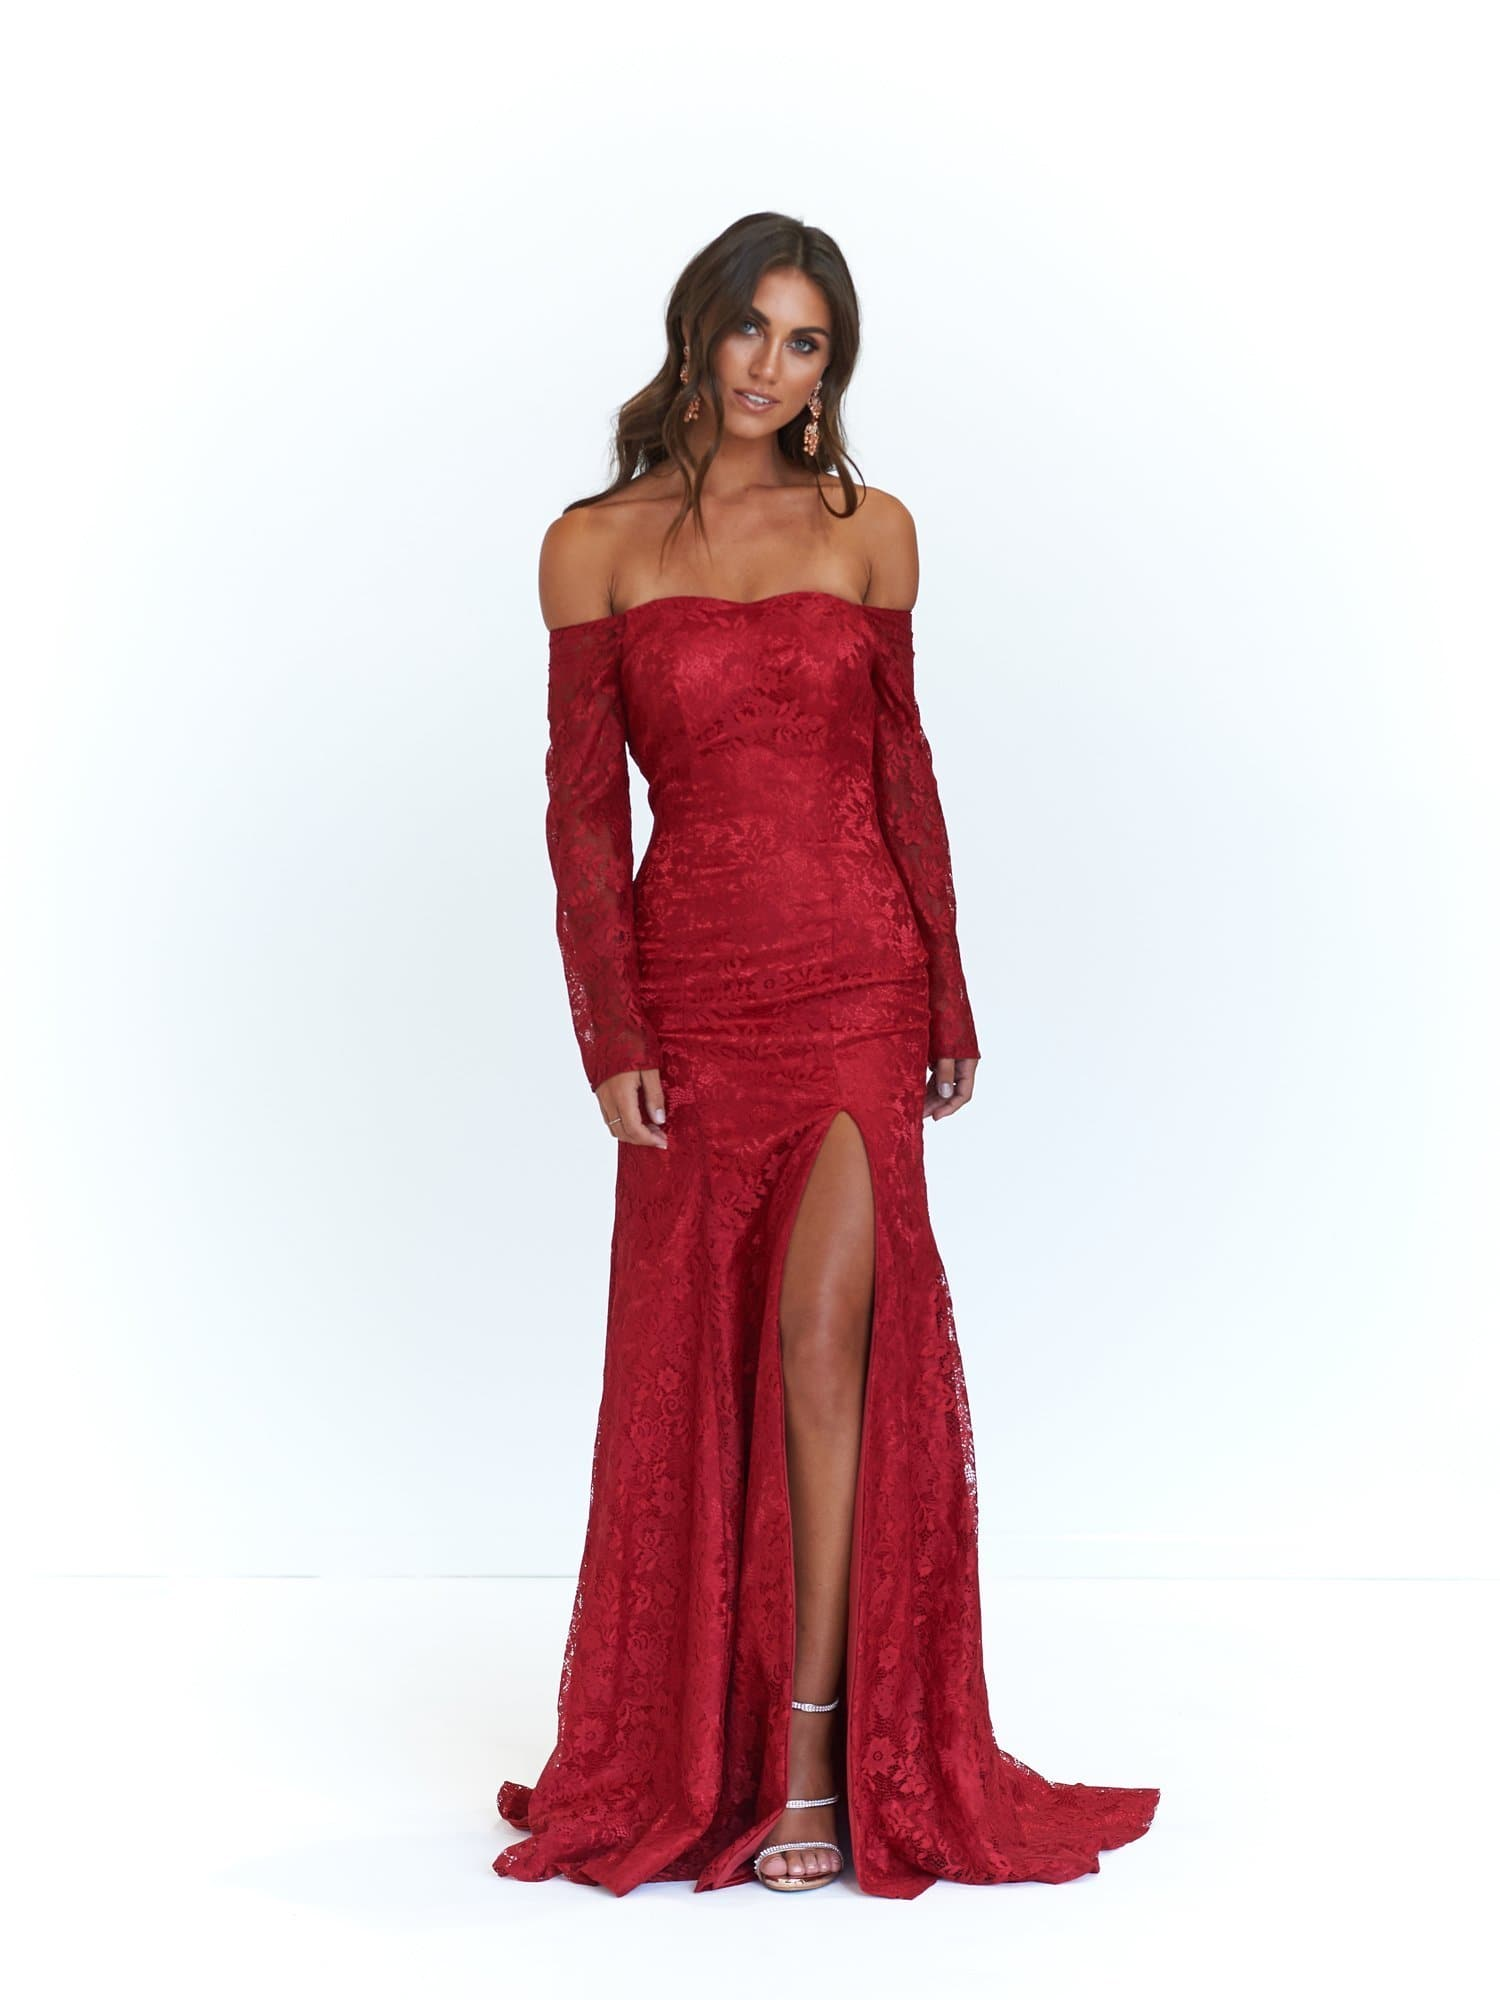 f5365124f782 A N Duaa -Deep Red Off-Shoulder Lace Gown with Long Sleeves – A N ...